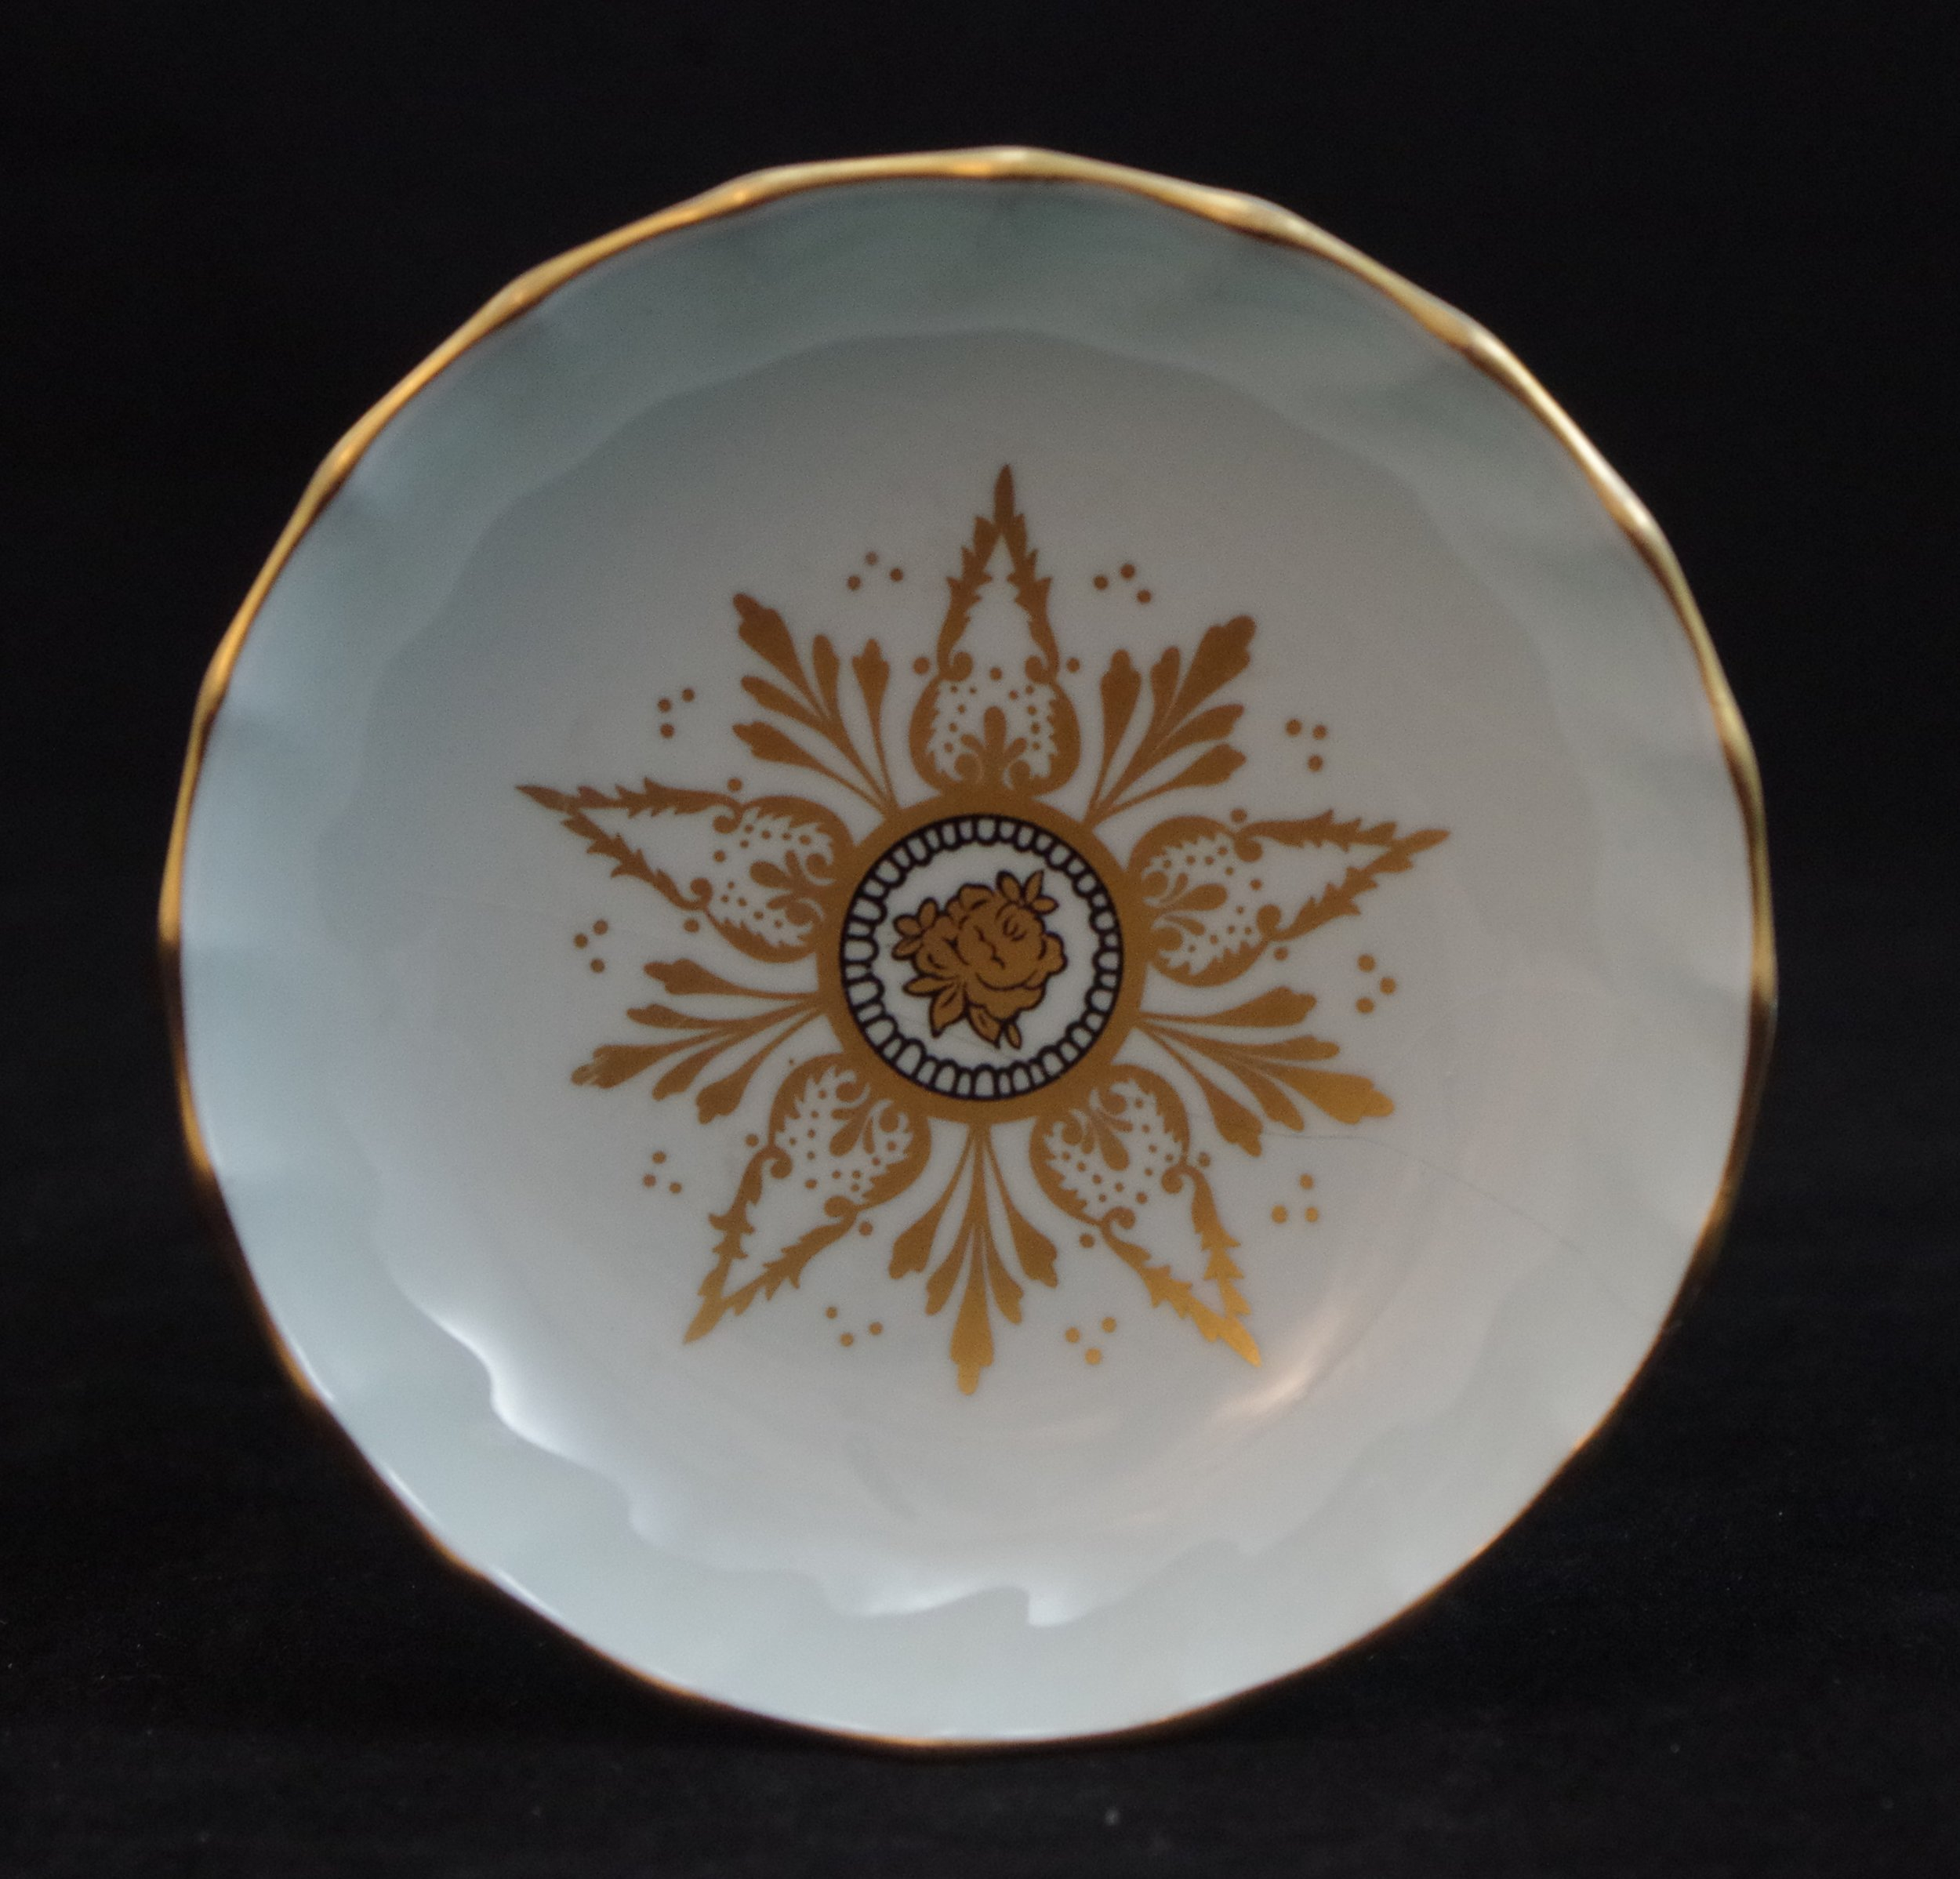 royal-crown-derby-boston-round-tray-celadon-derby-star